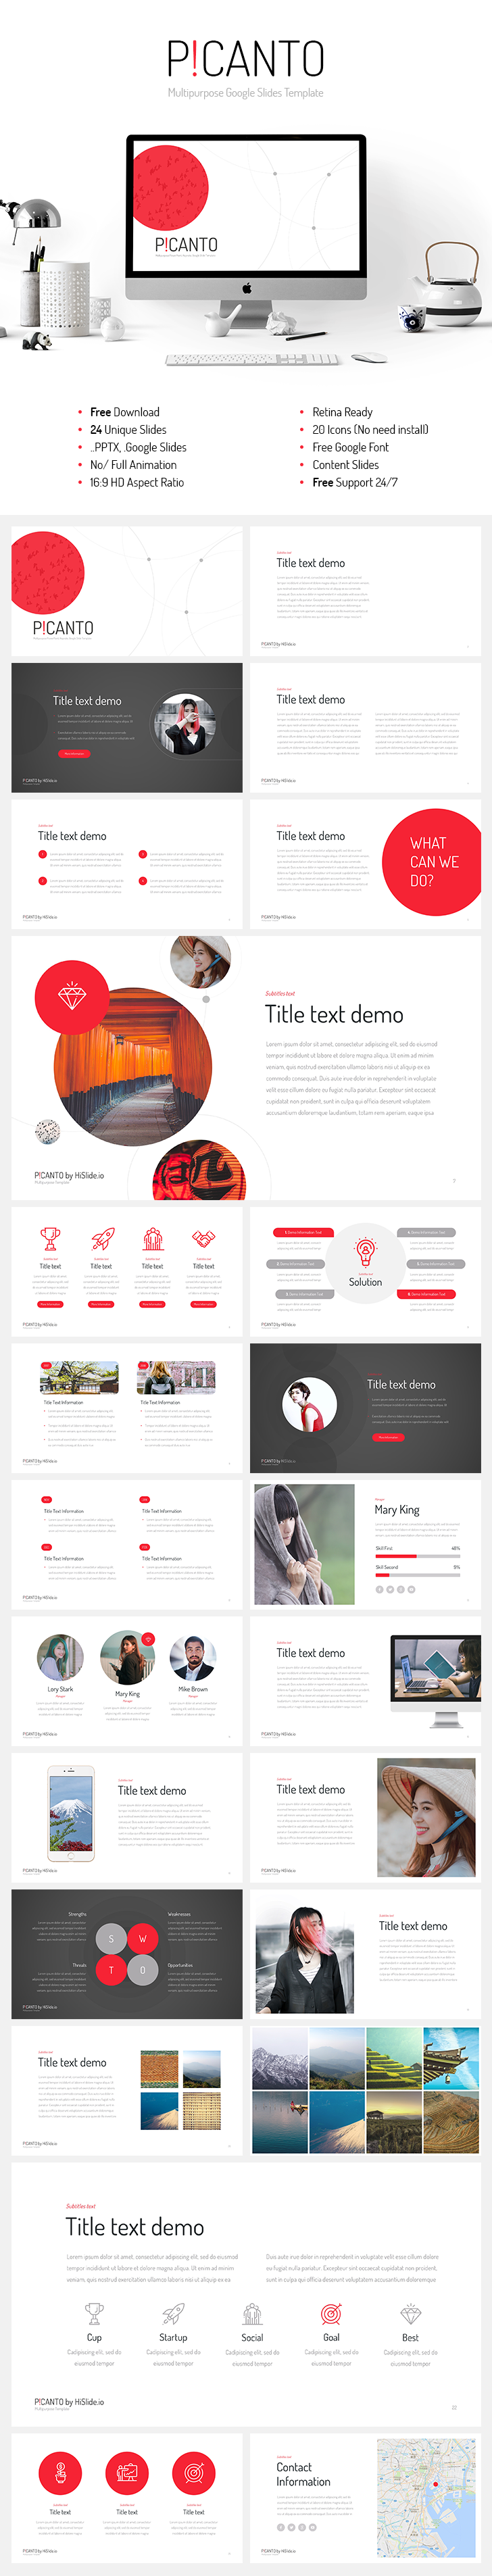 picanto google slides template free download